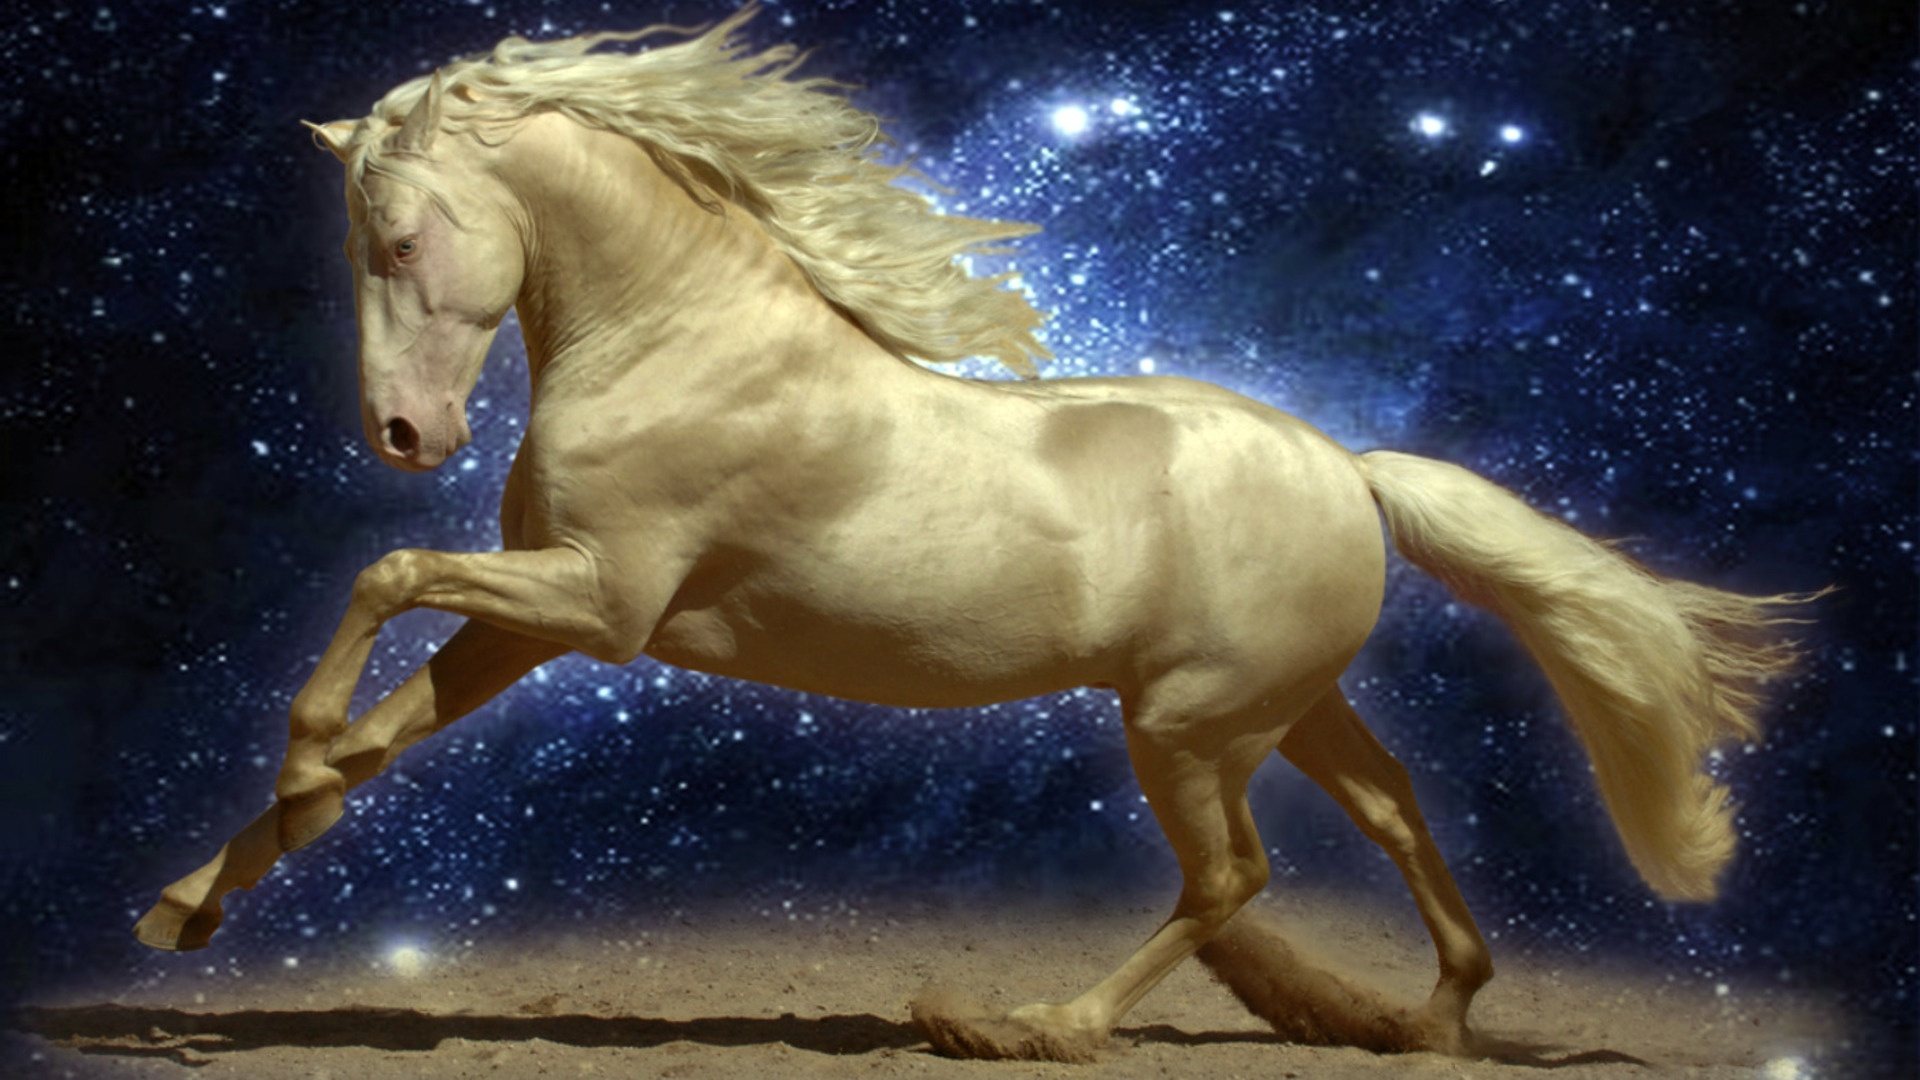 horses wallpaper 3d wallpaper horses wallpaper 3d hd wallpaper